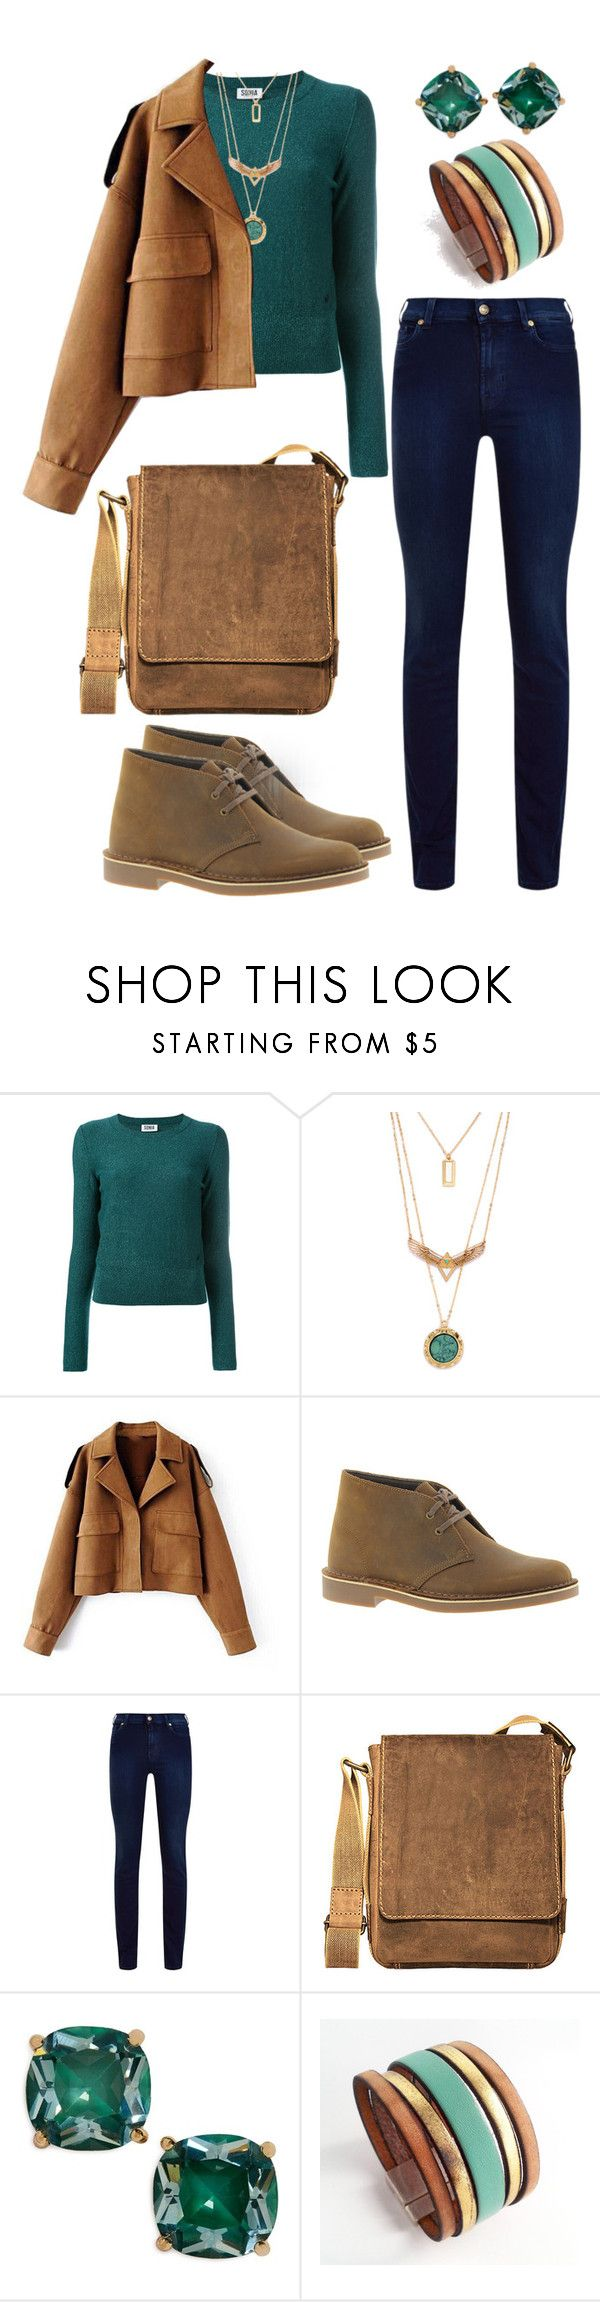 """Forest Inspired"" by aimee716 ❤ liked on Polyvore featuring Sonia by Sonia Rykiel, Clarks, 7 For All Mankind, Jack Georges, Kate Spade, casual, autumn and forest"